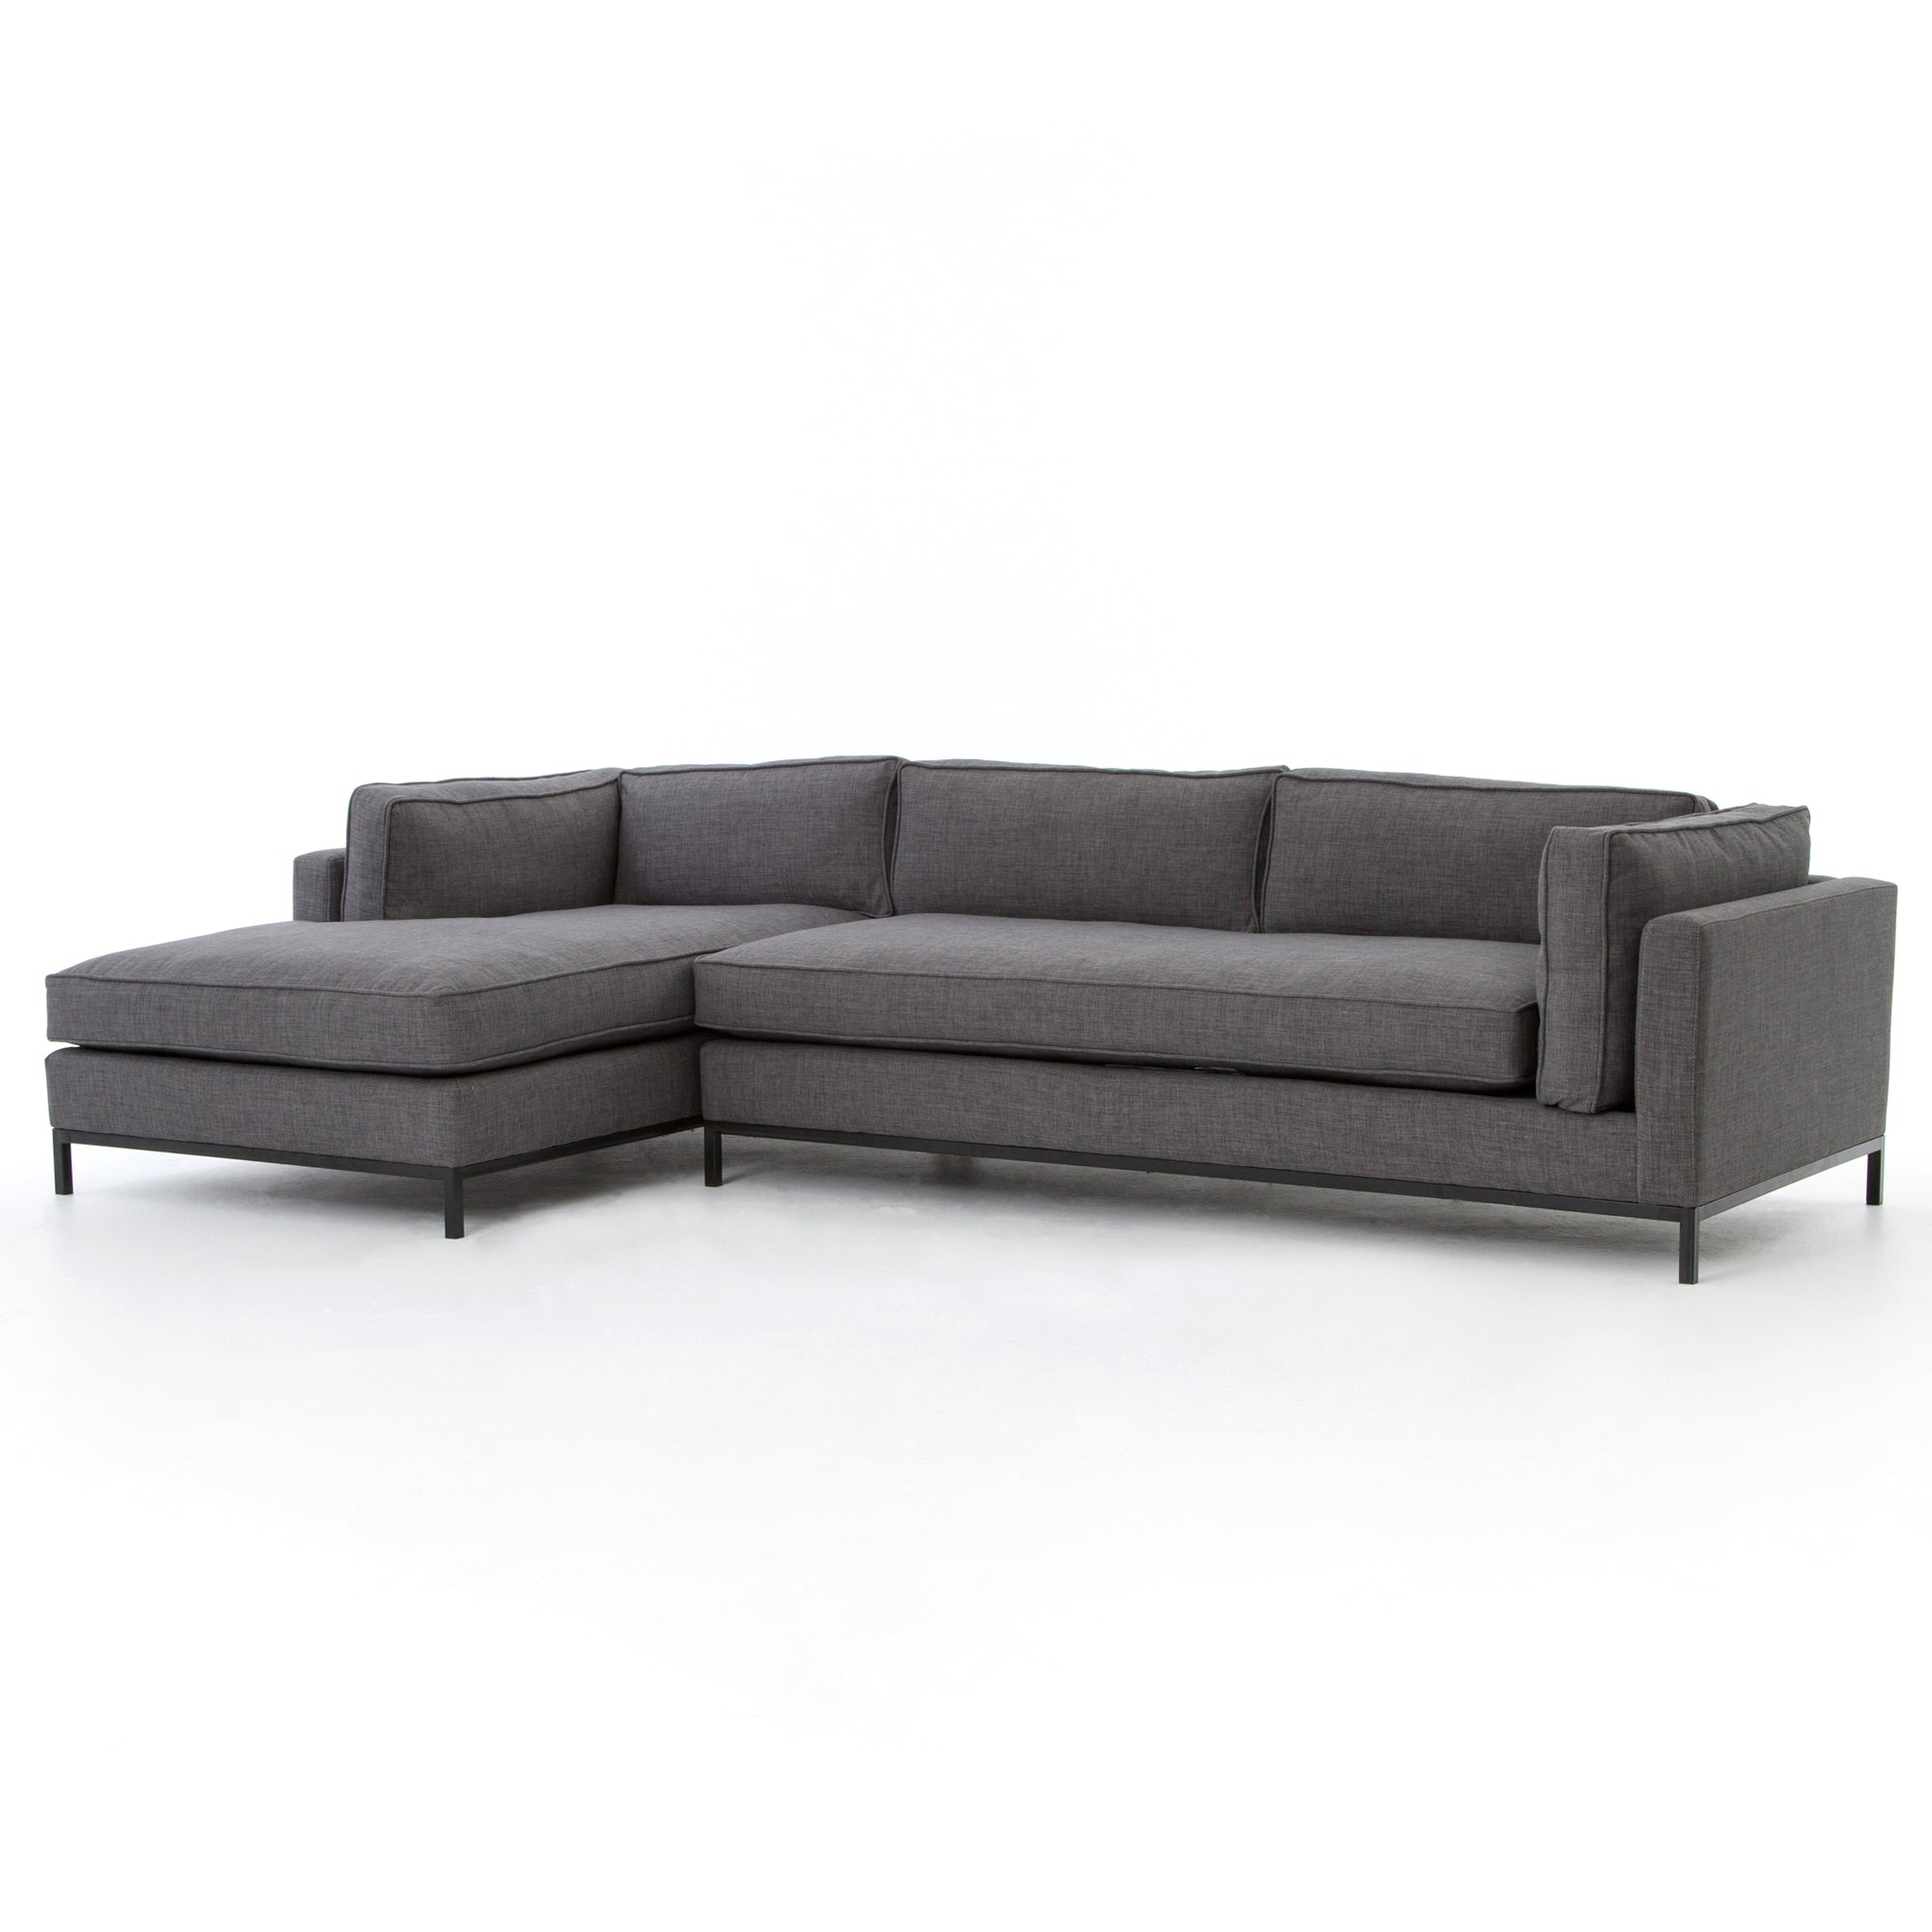 Grammercy 2 Pc Sectional - Laf Chaise - Benn